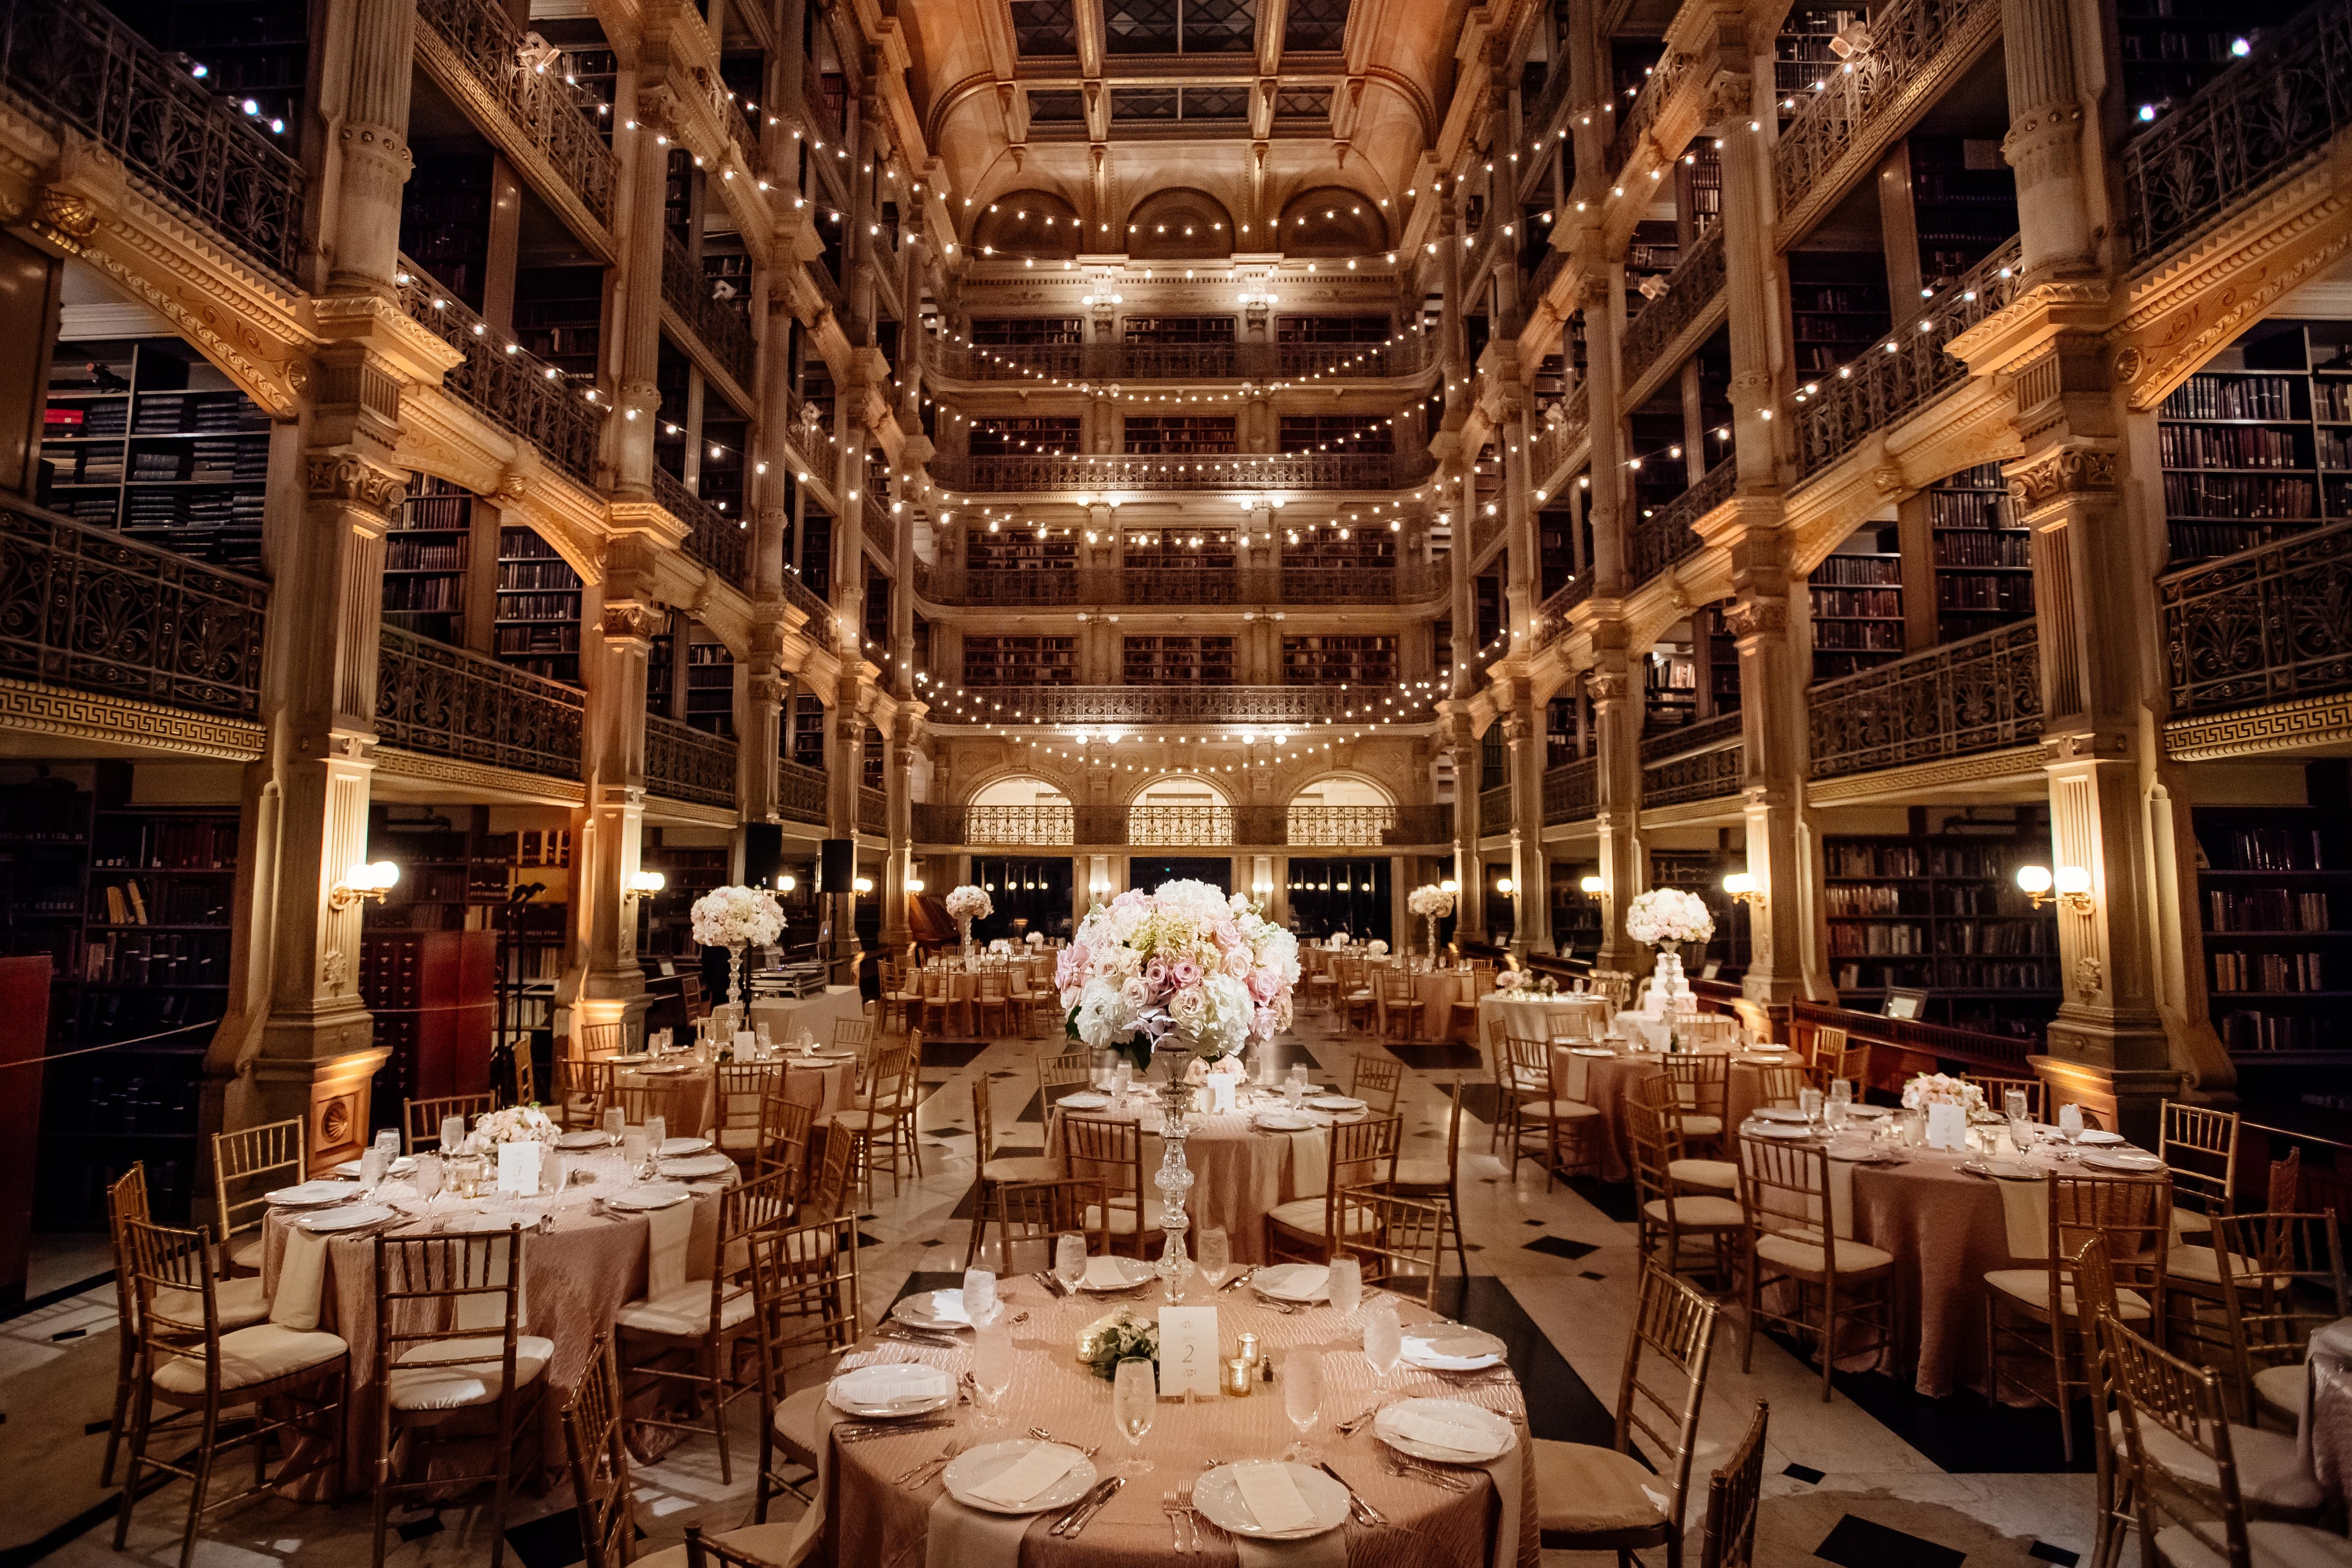 Cafe Lights At Reception In Baltimore Cafe Lights George Peabody Library Library Wedding